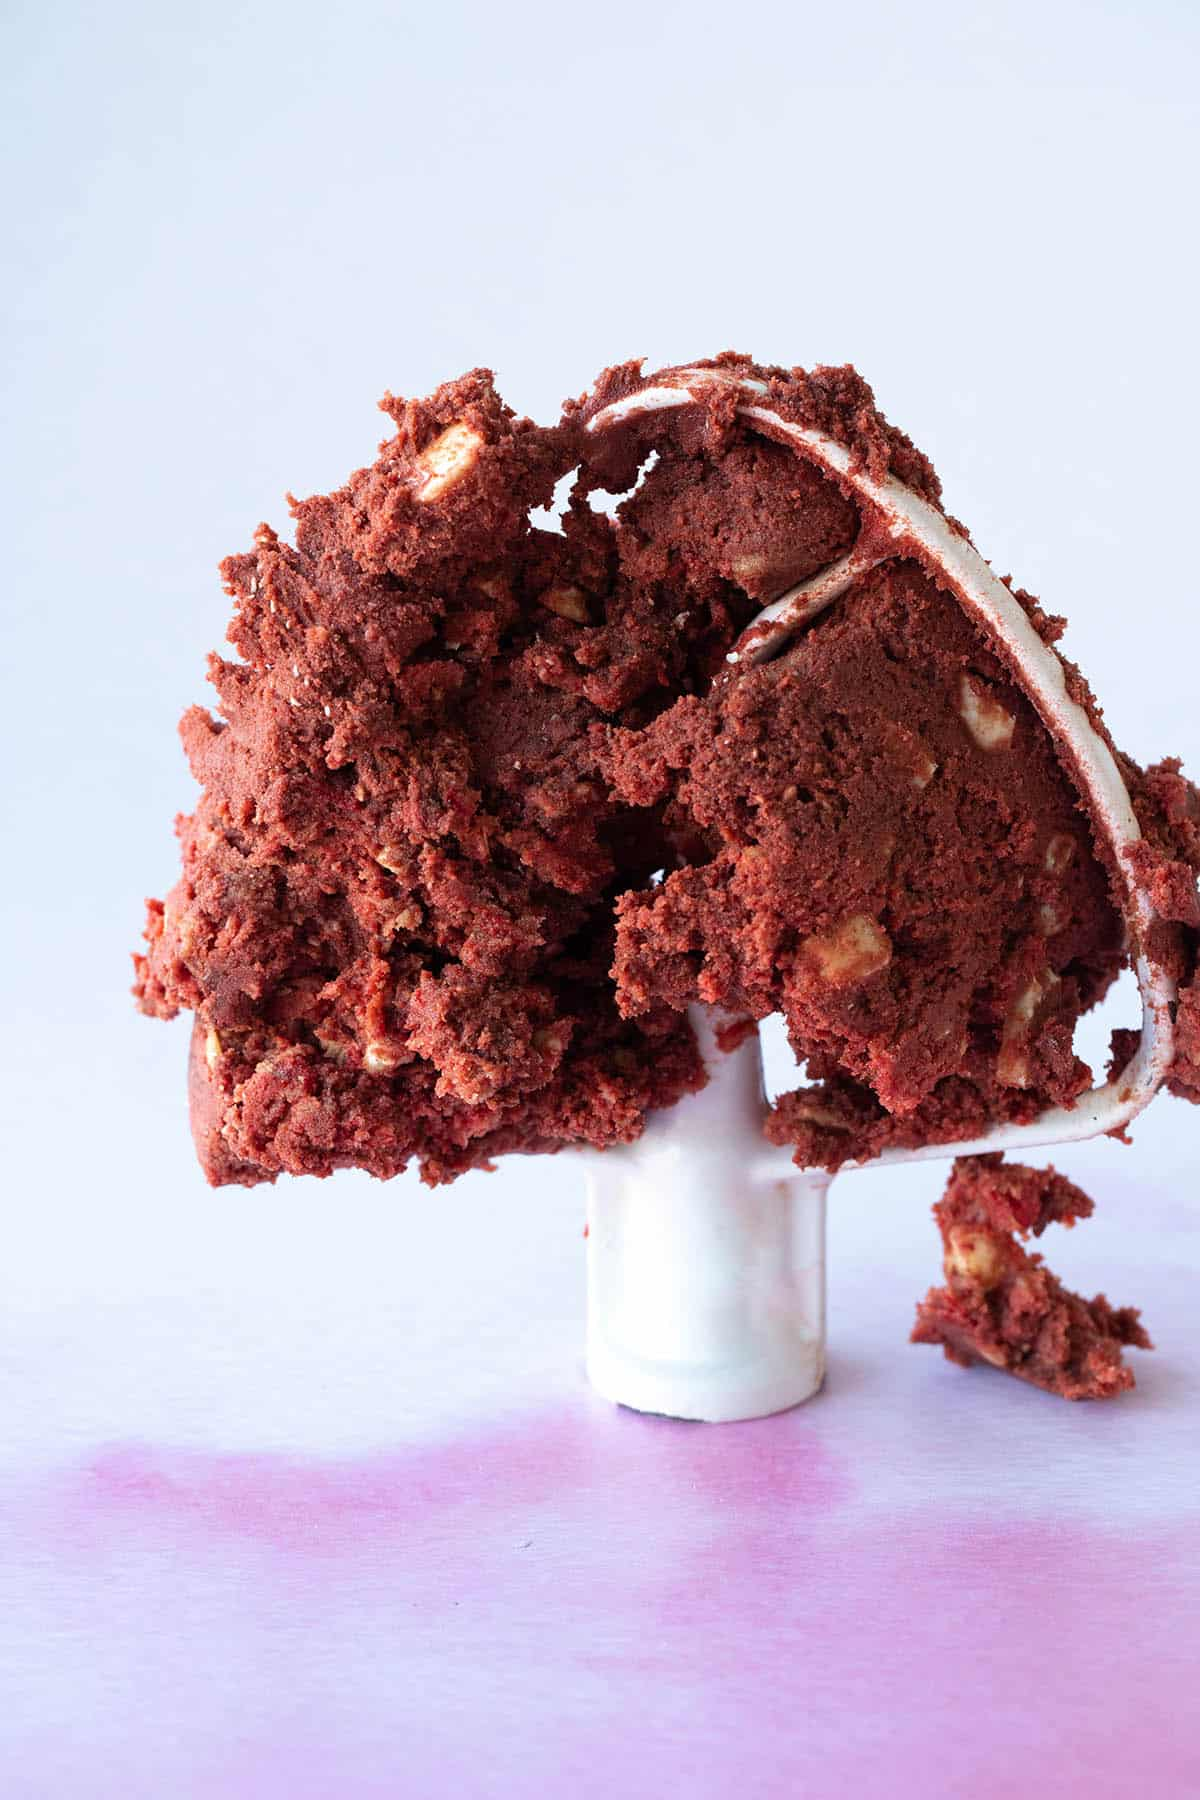 A kitchen aid beater covered in red velvet cookie dough.